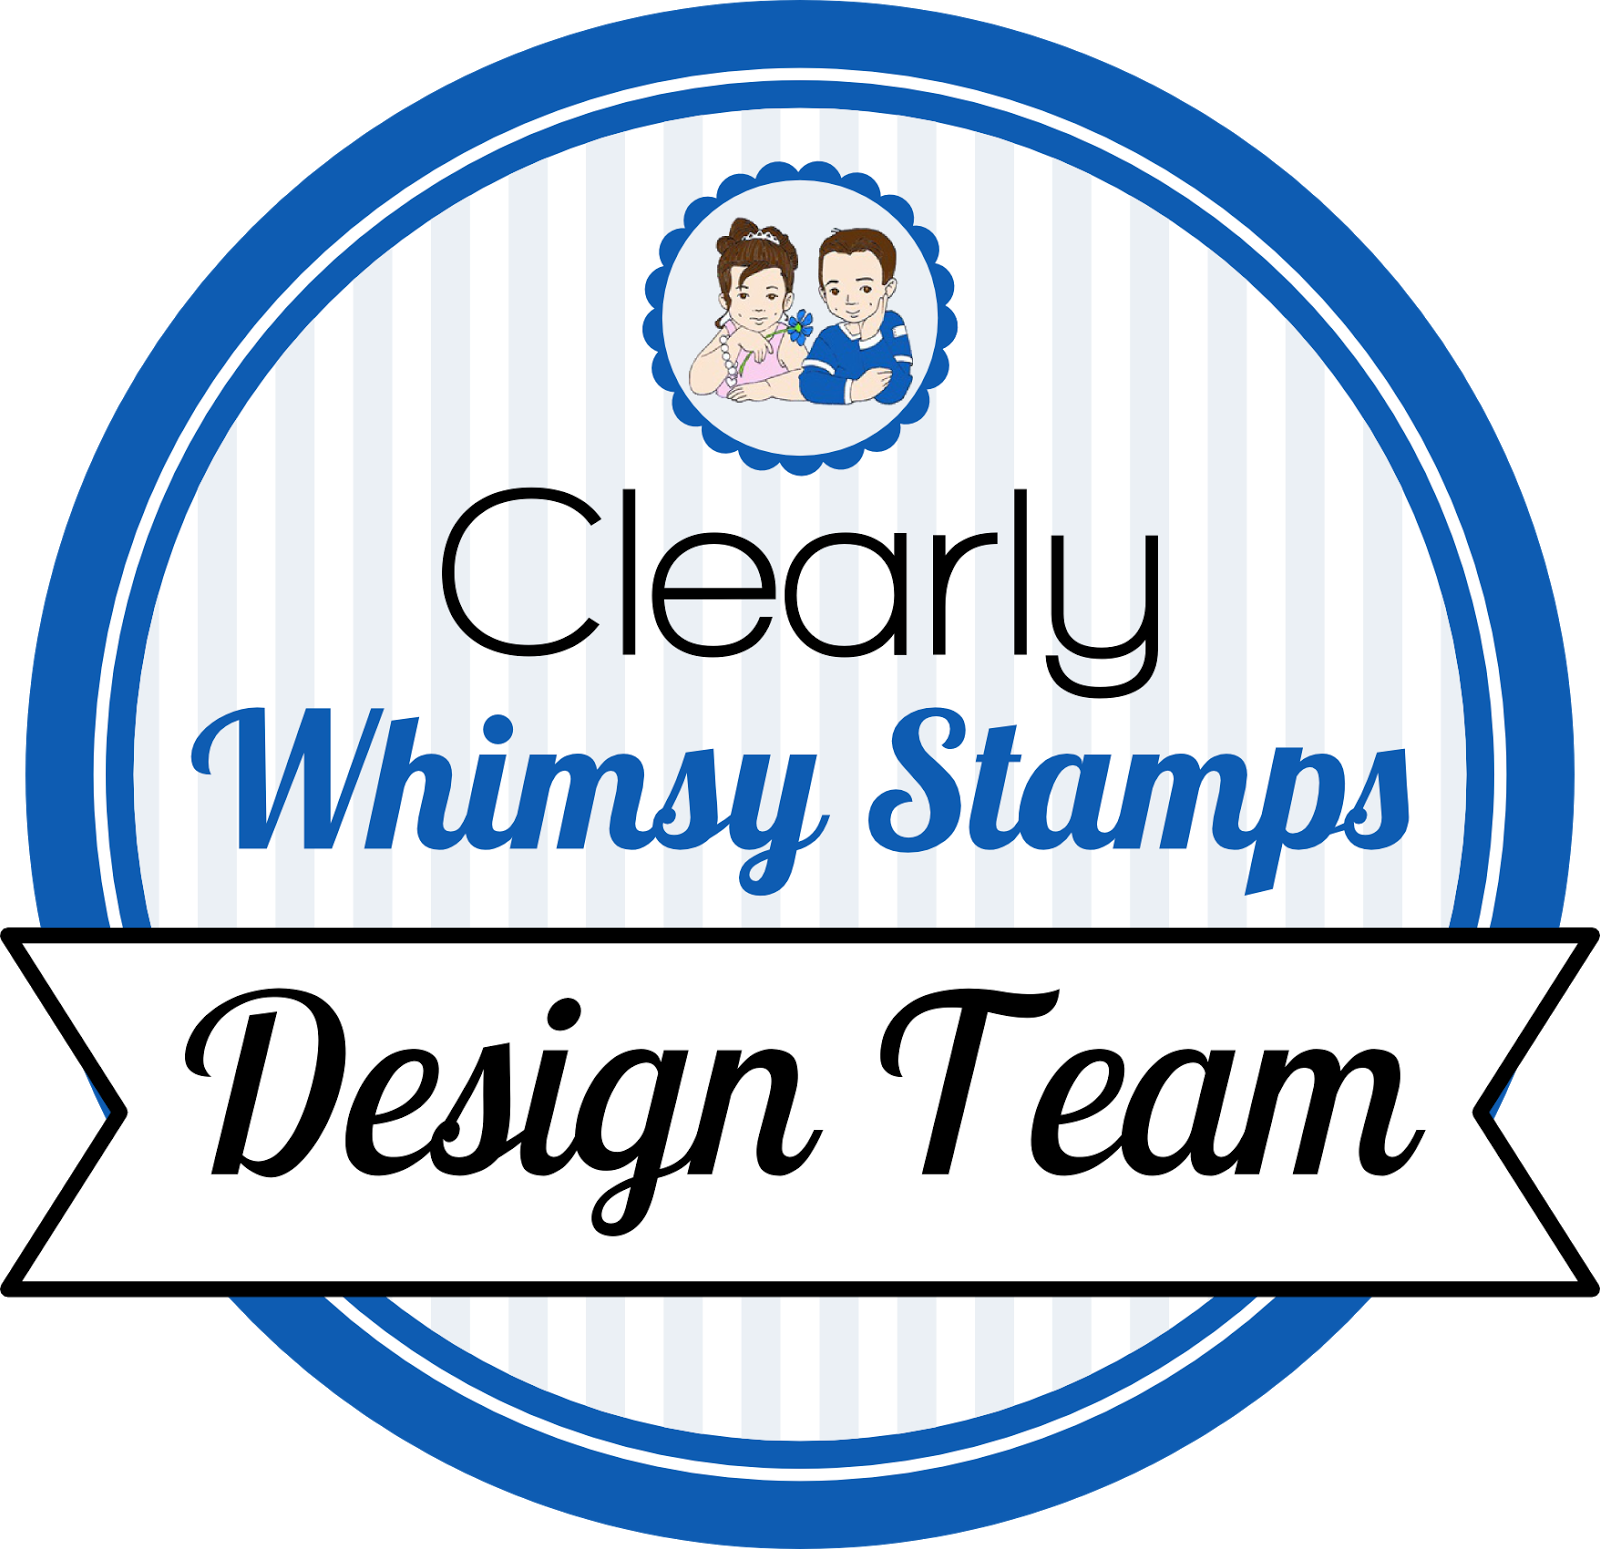 Designer for Clearly Whimsy Stamps